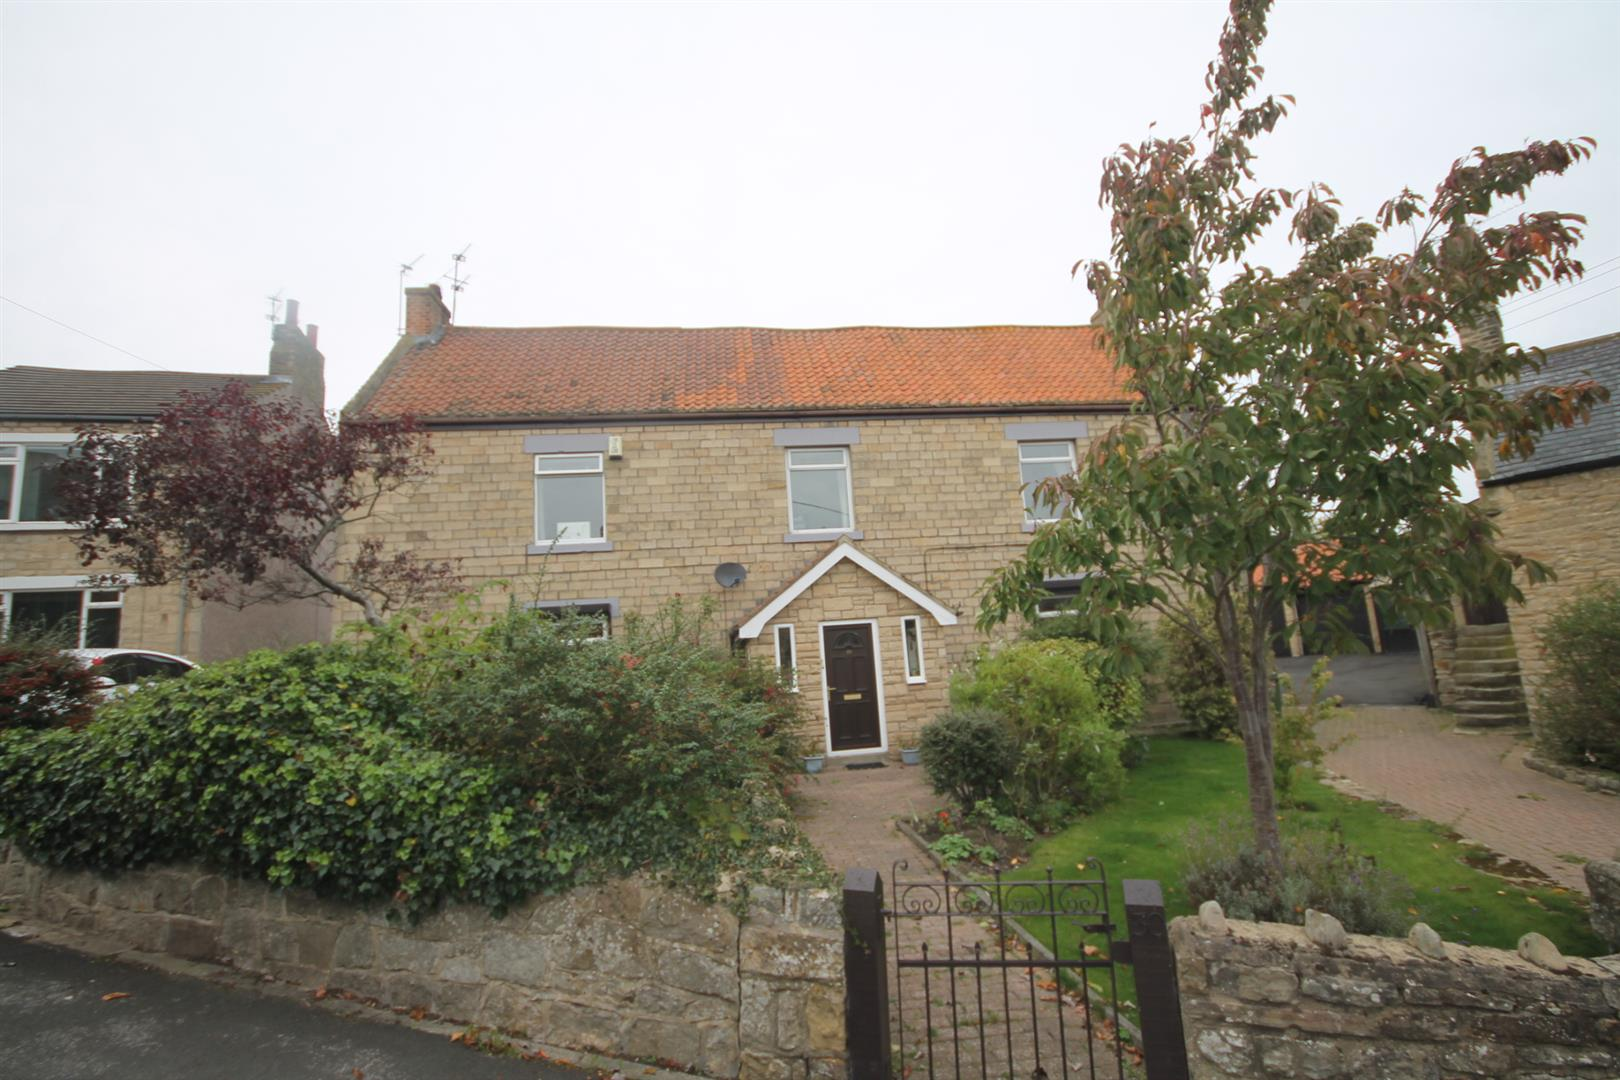 5 Bedrooms Detached House for sale in Station Road, Witton Le Wear, Bishop Auckland